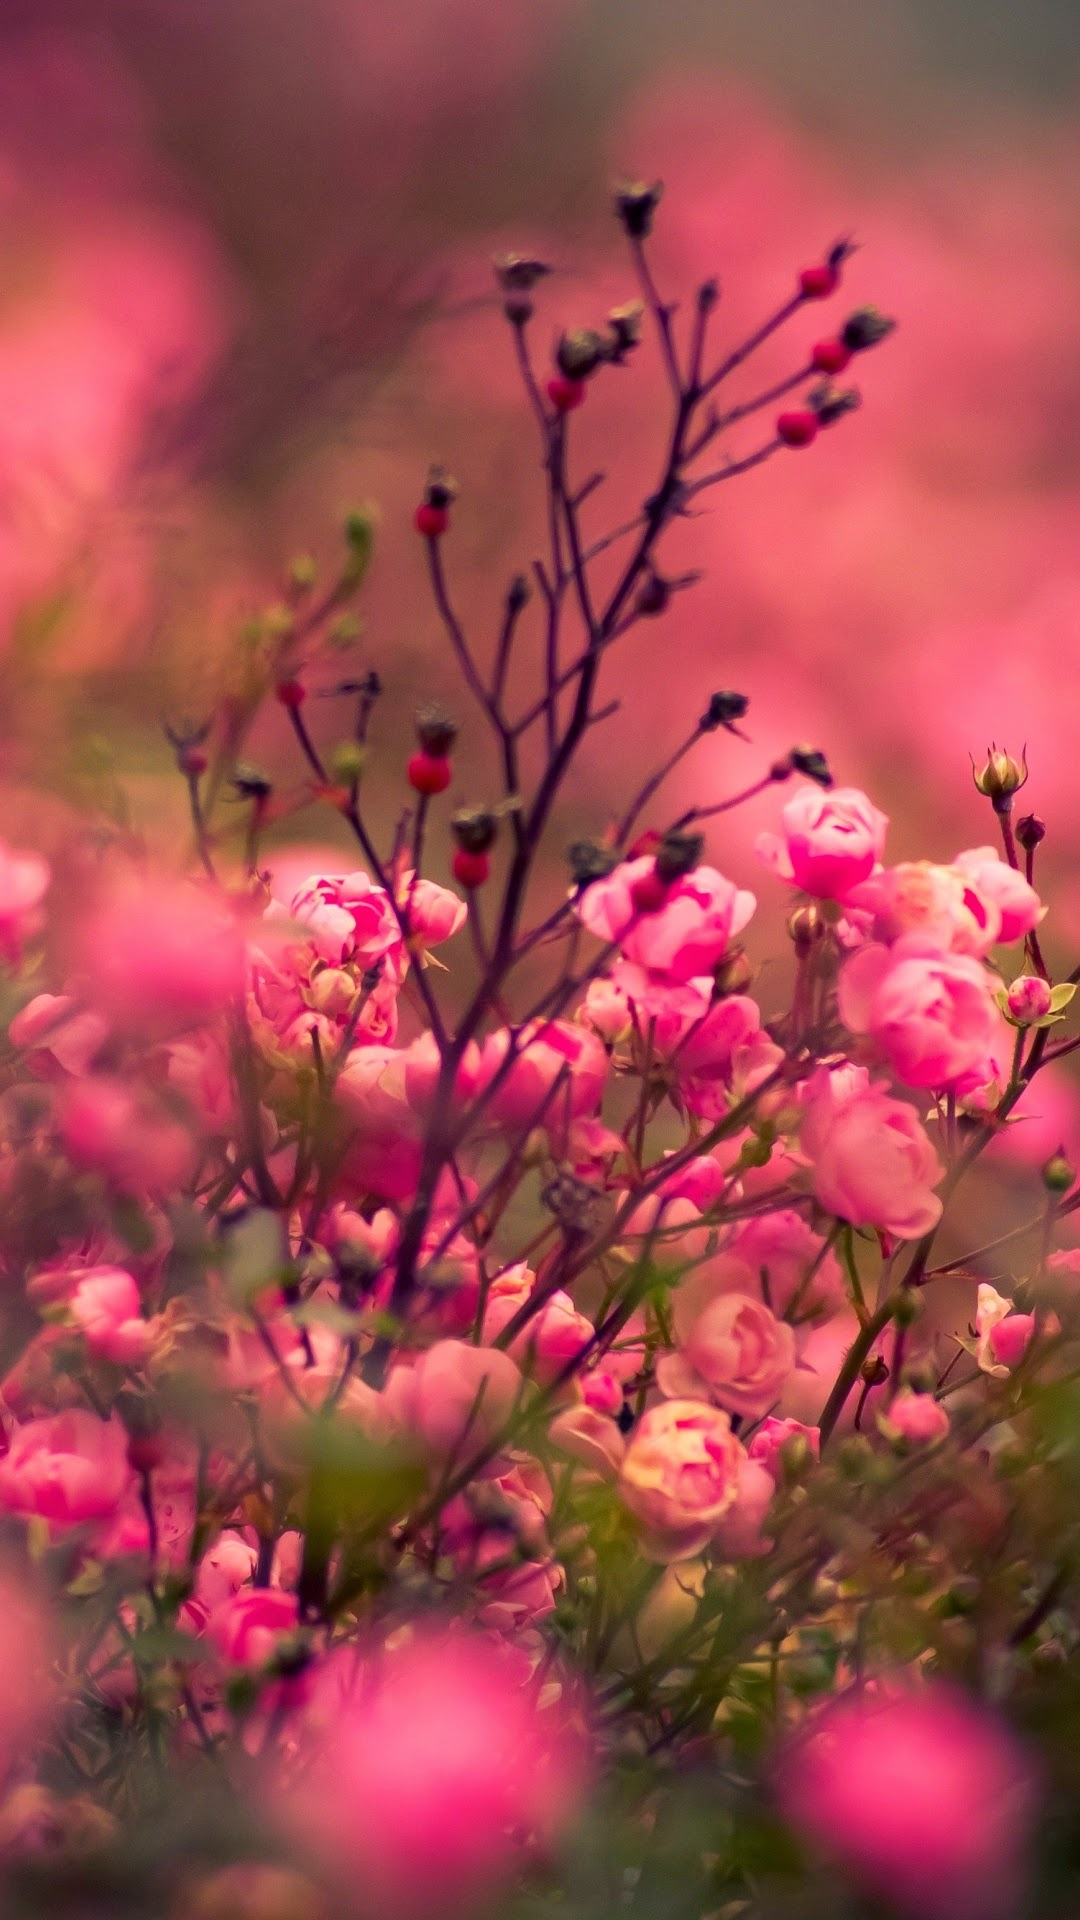 roses flowers grass android wallpaper